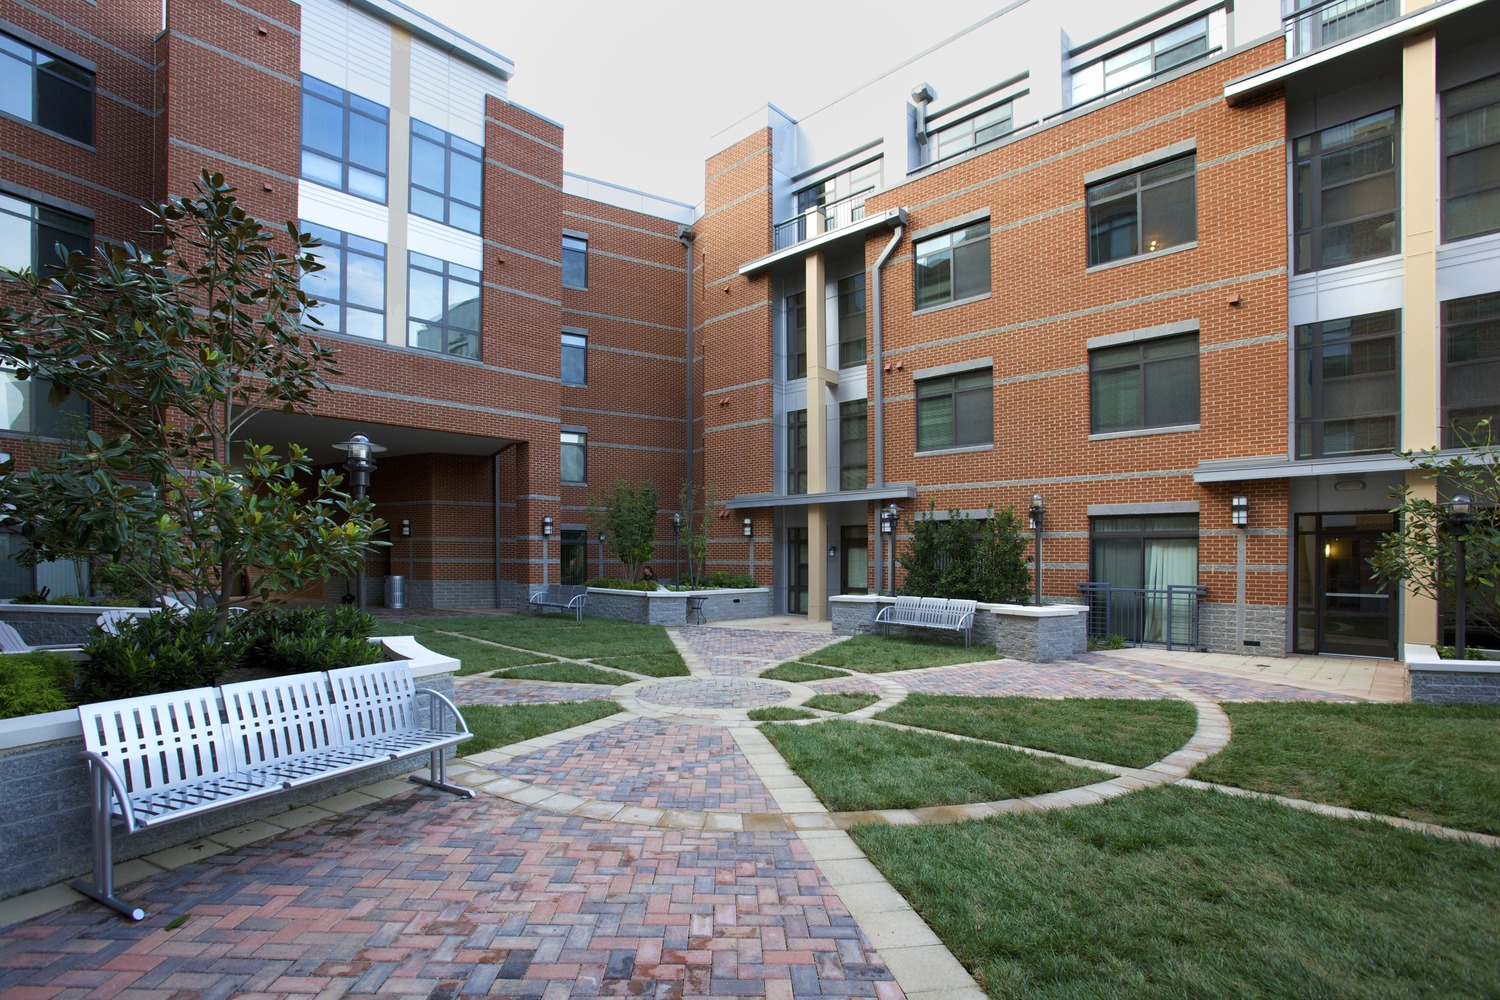 CBG builds North Tract Lofts, a 184 Apartment Units, 4,700-SF Amenity Area, and Two Stories of Underground Parking in Arlington, VA - Image #2